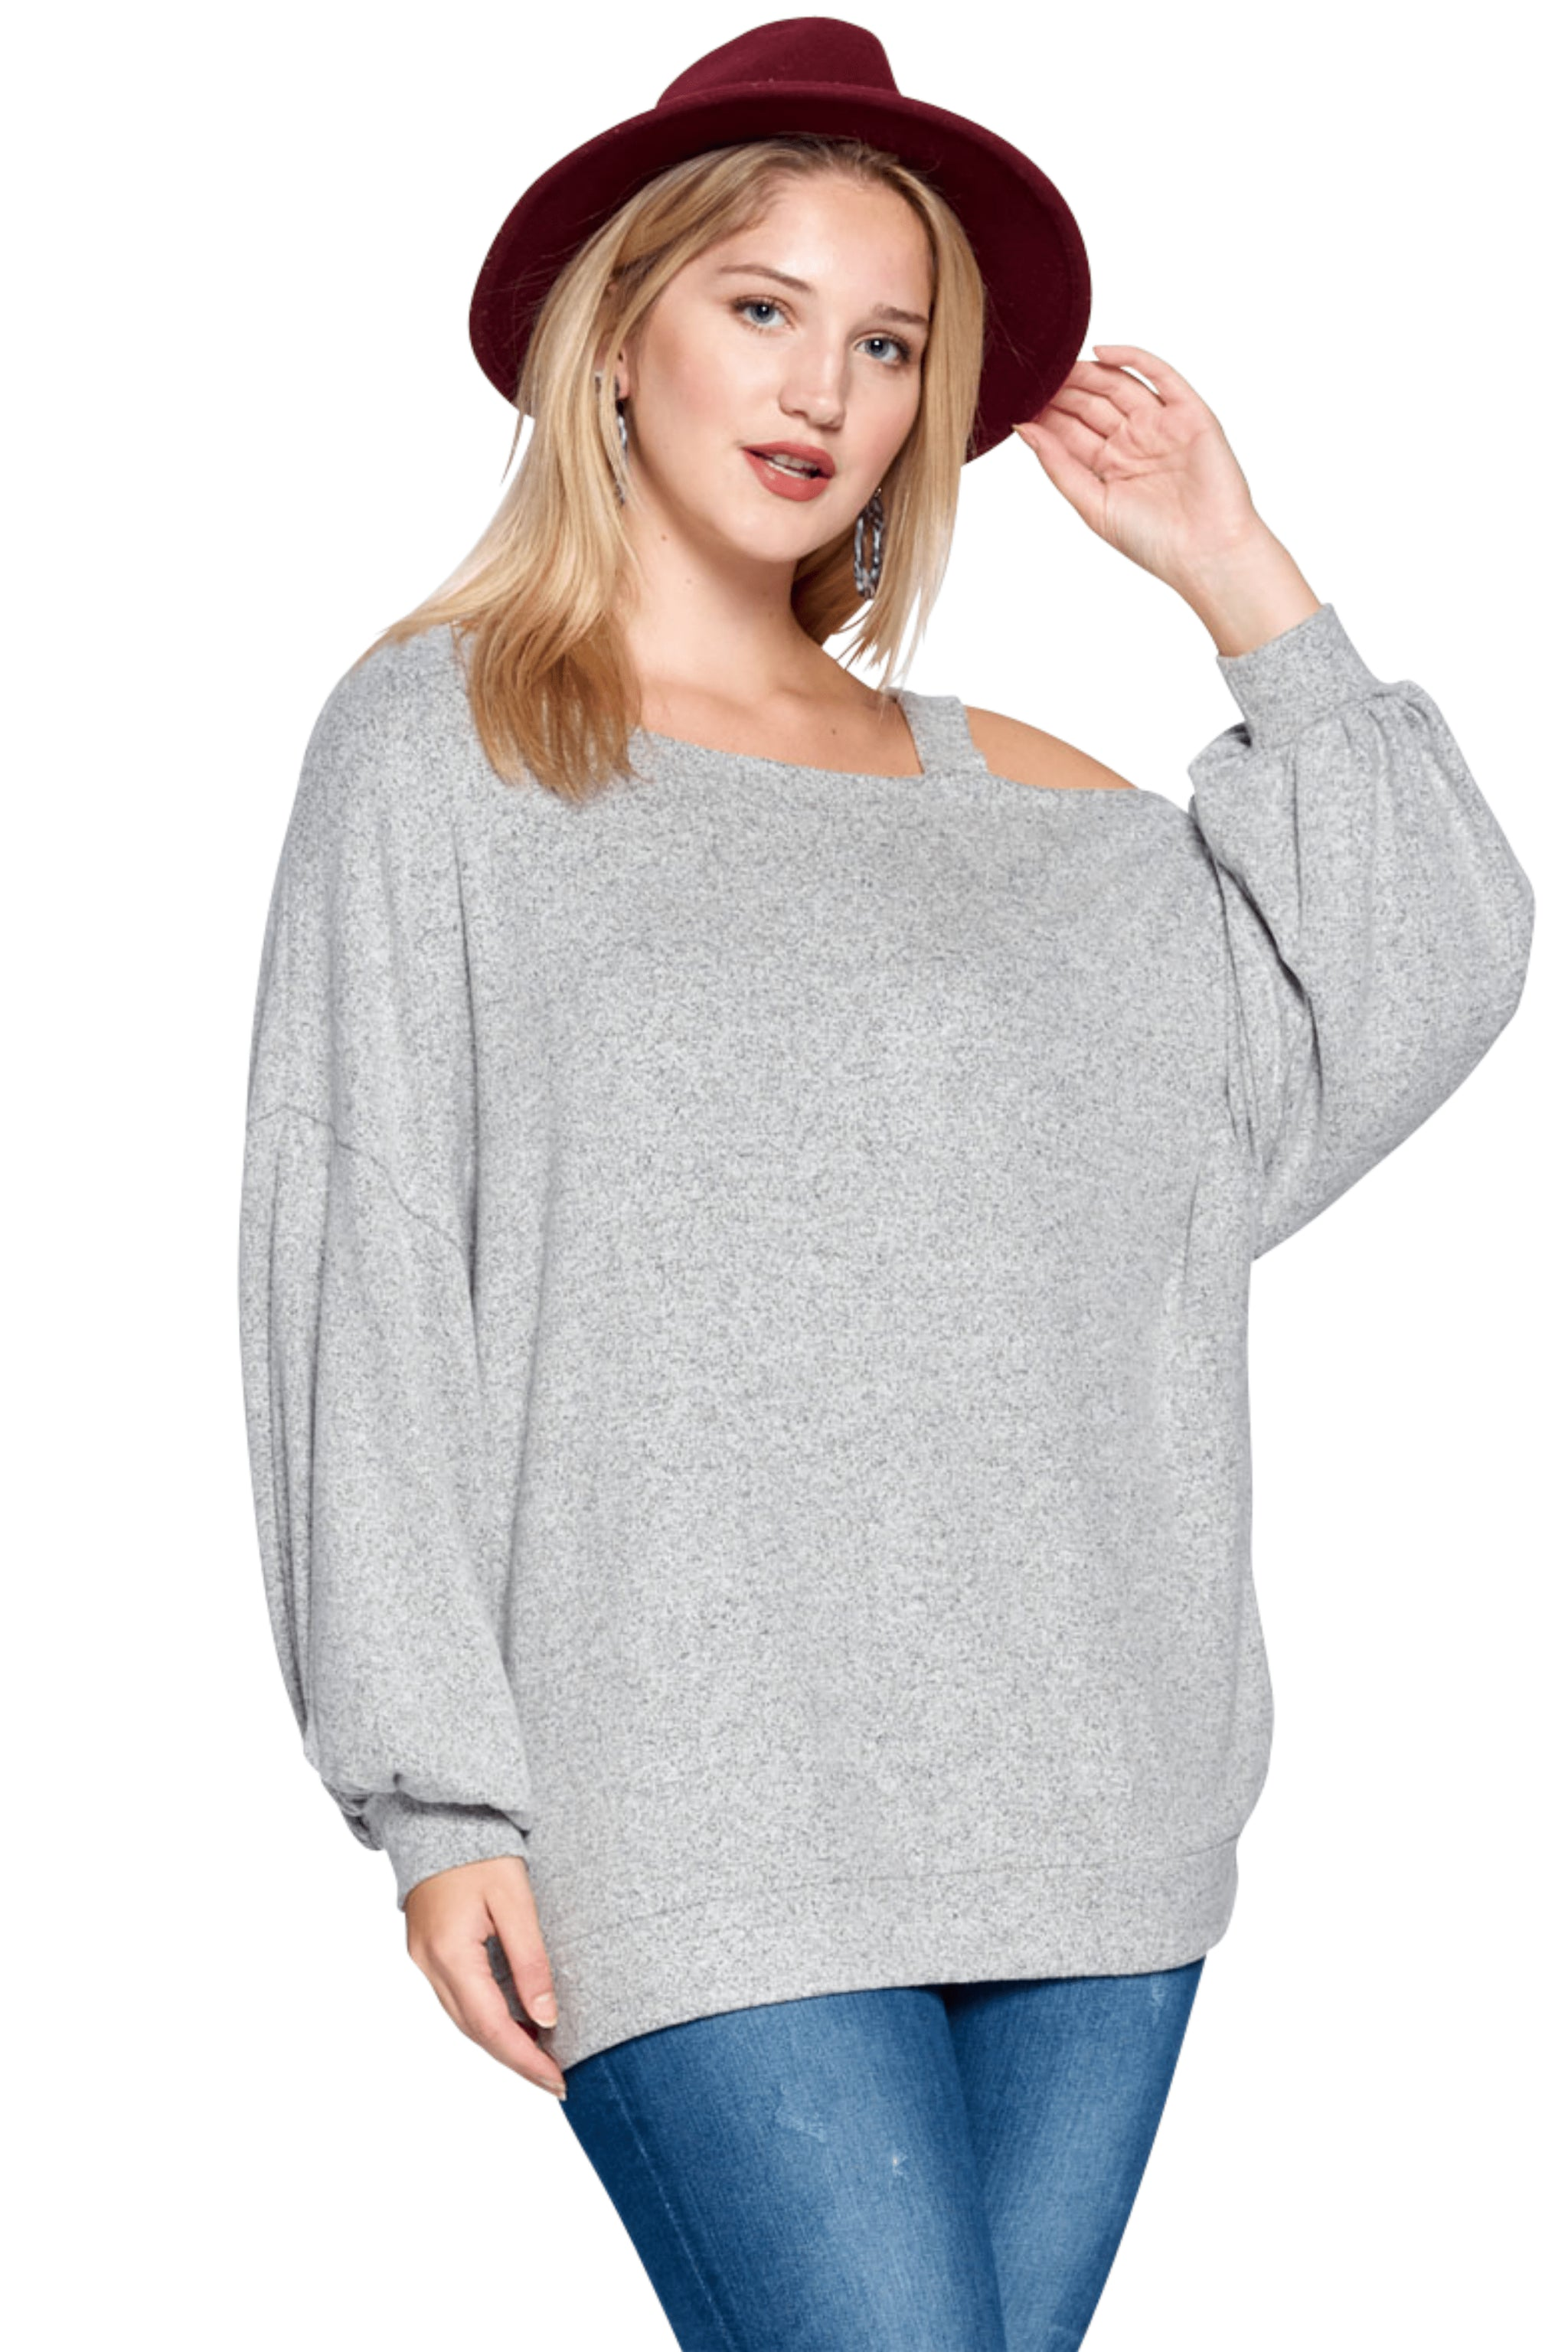 plus size Tops aa. Fiona Knit Top